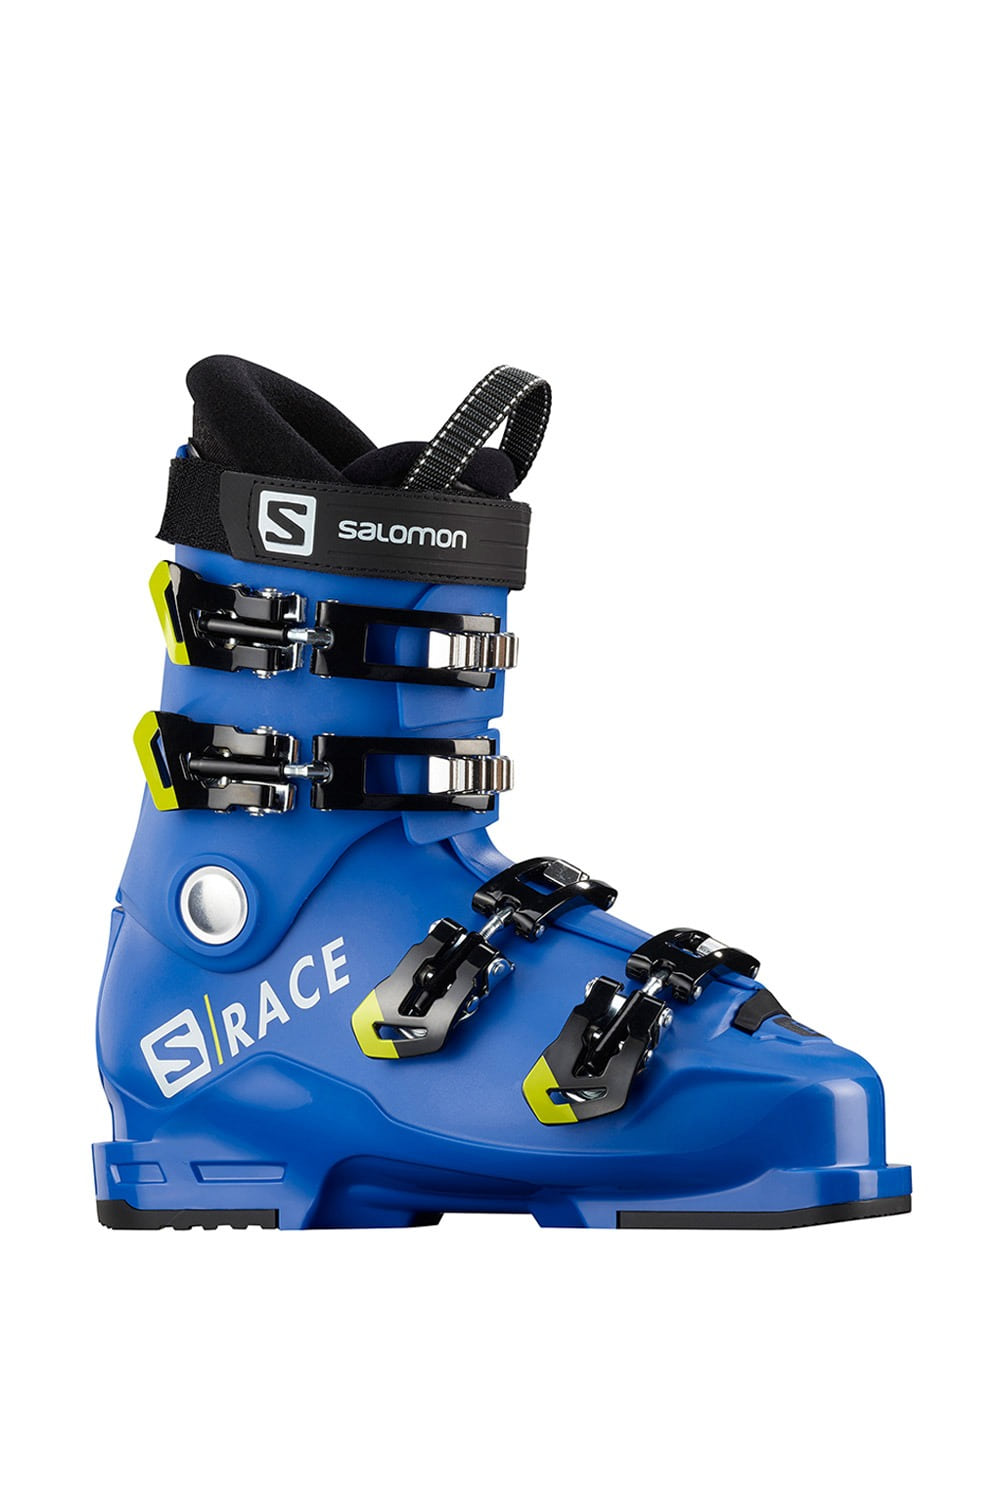 1920 살로몬 주니어 스키 부츠 에스레이스 60T L SALOMON(L40896300)YOUTH S/RACE 60T L_RACE BLUE/ACID GREEN/BLACK_BVSA915BU